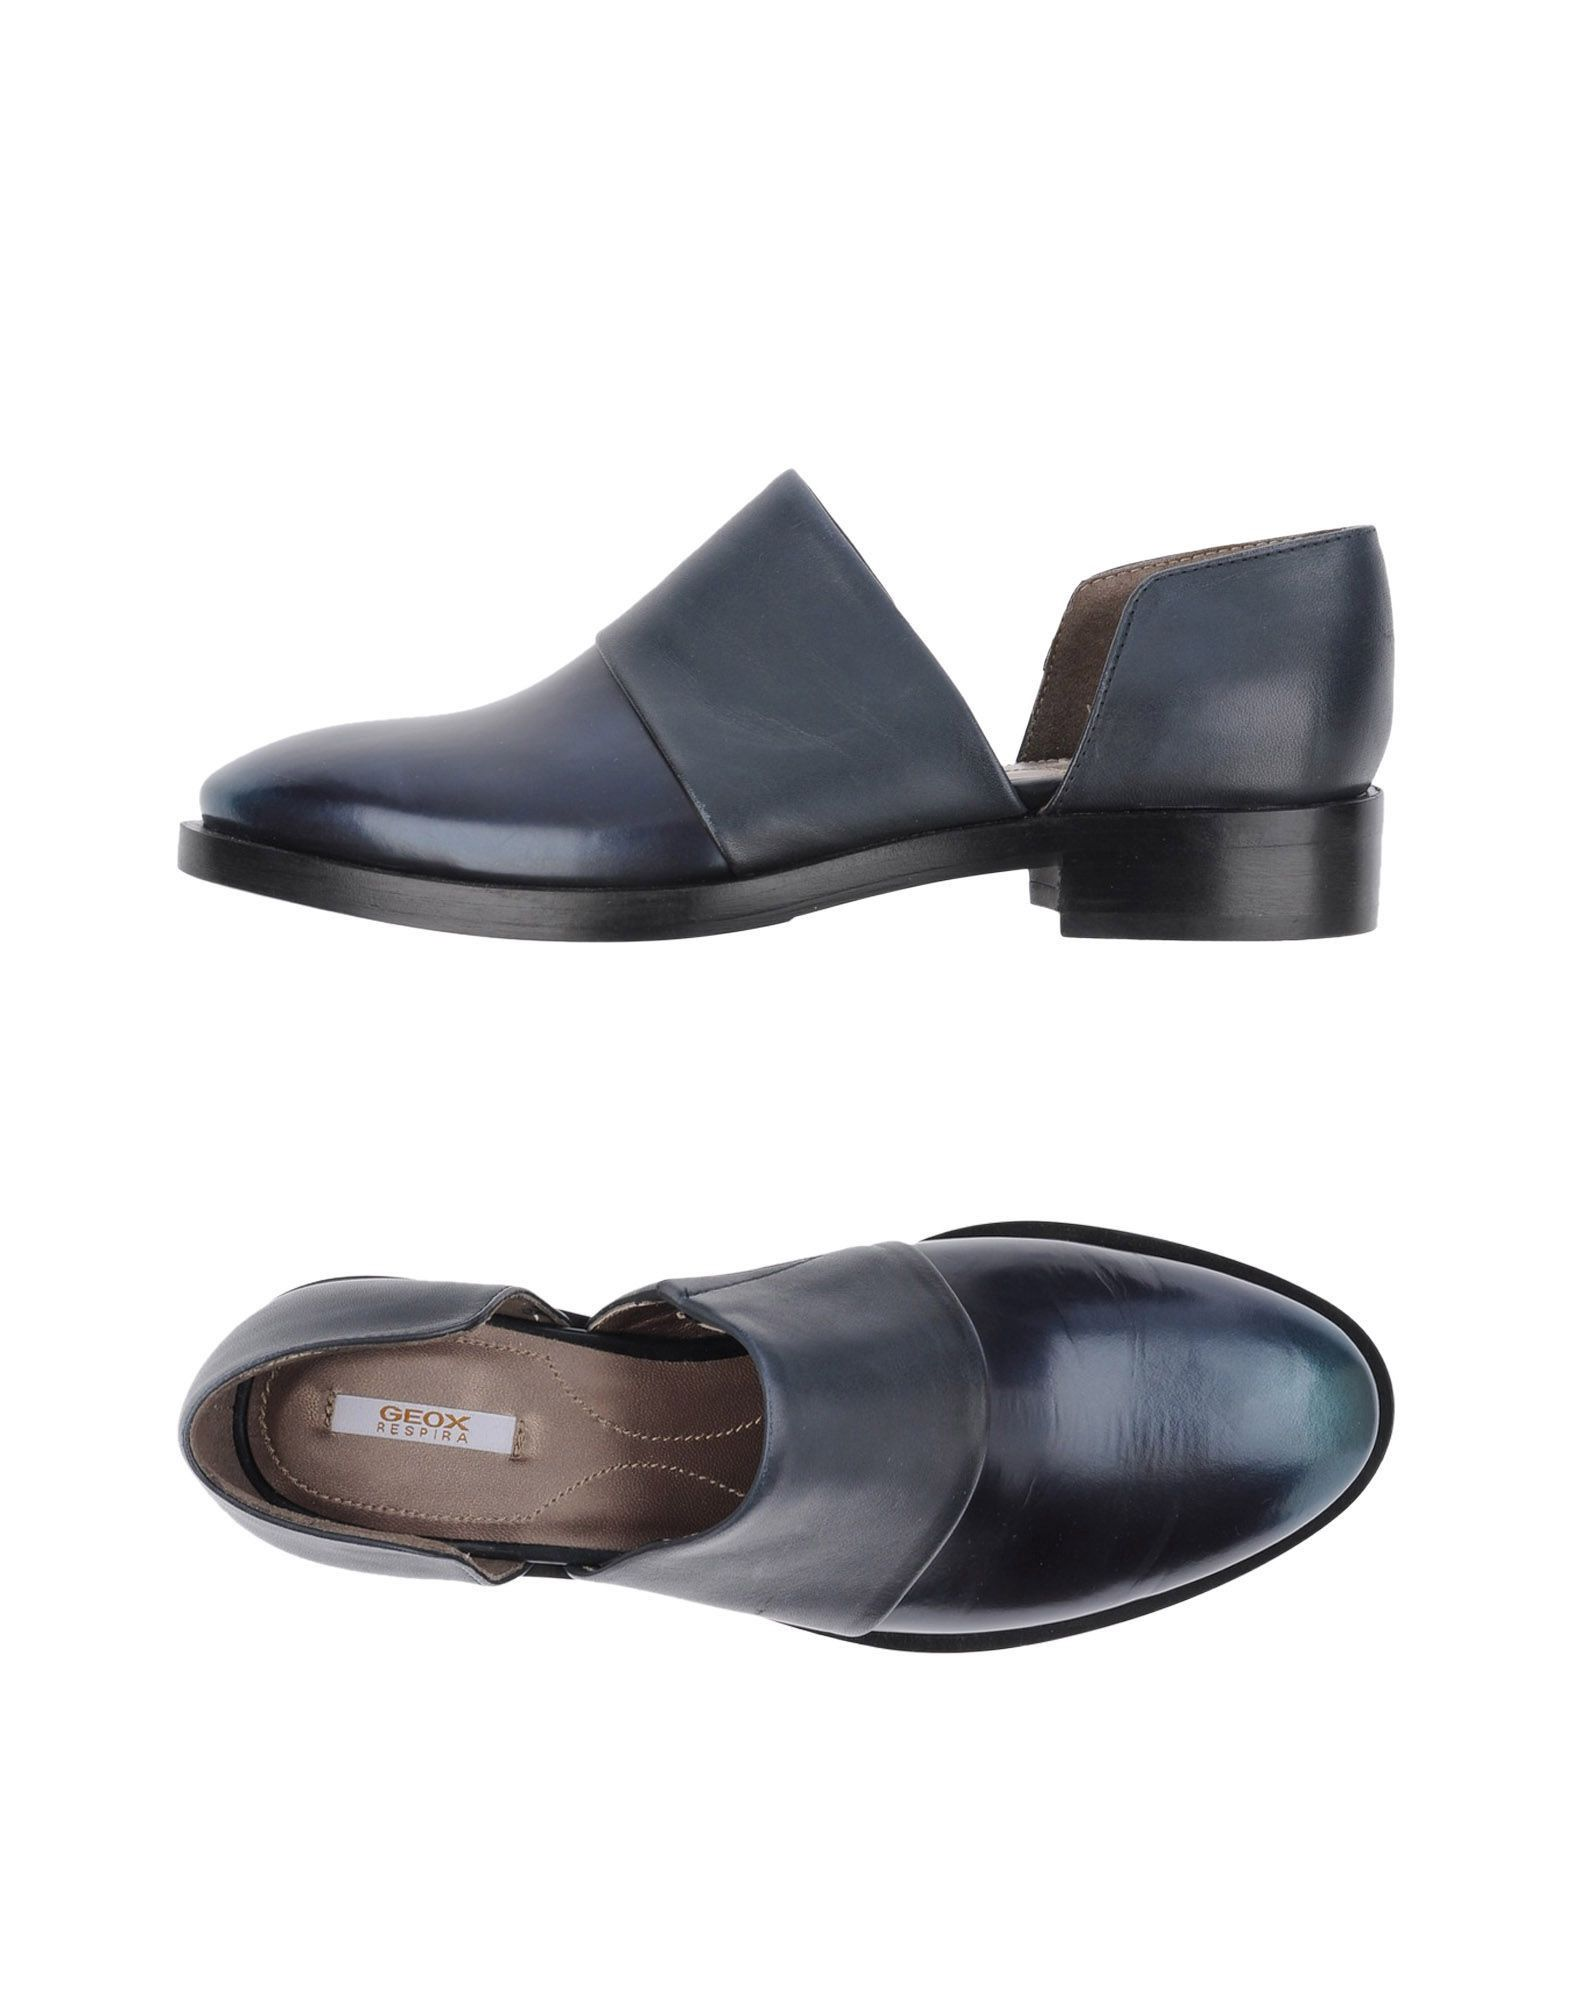 566f423d65 GEOX Loafer. #geox #shoes # | Geox | Loafers for women, Loafers, Shoes